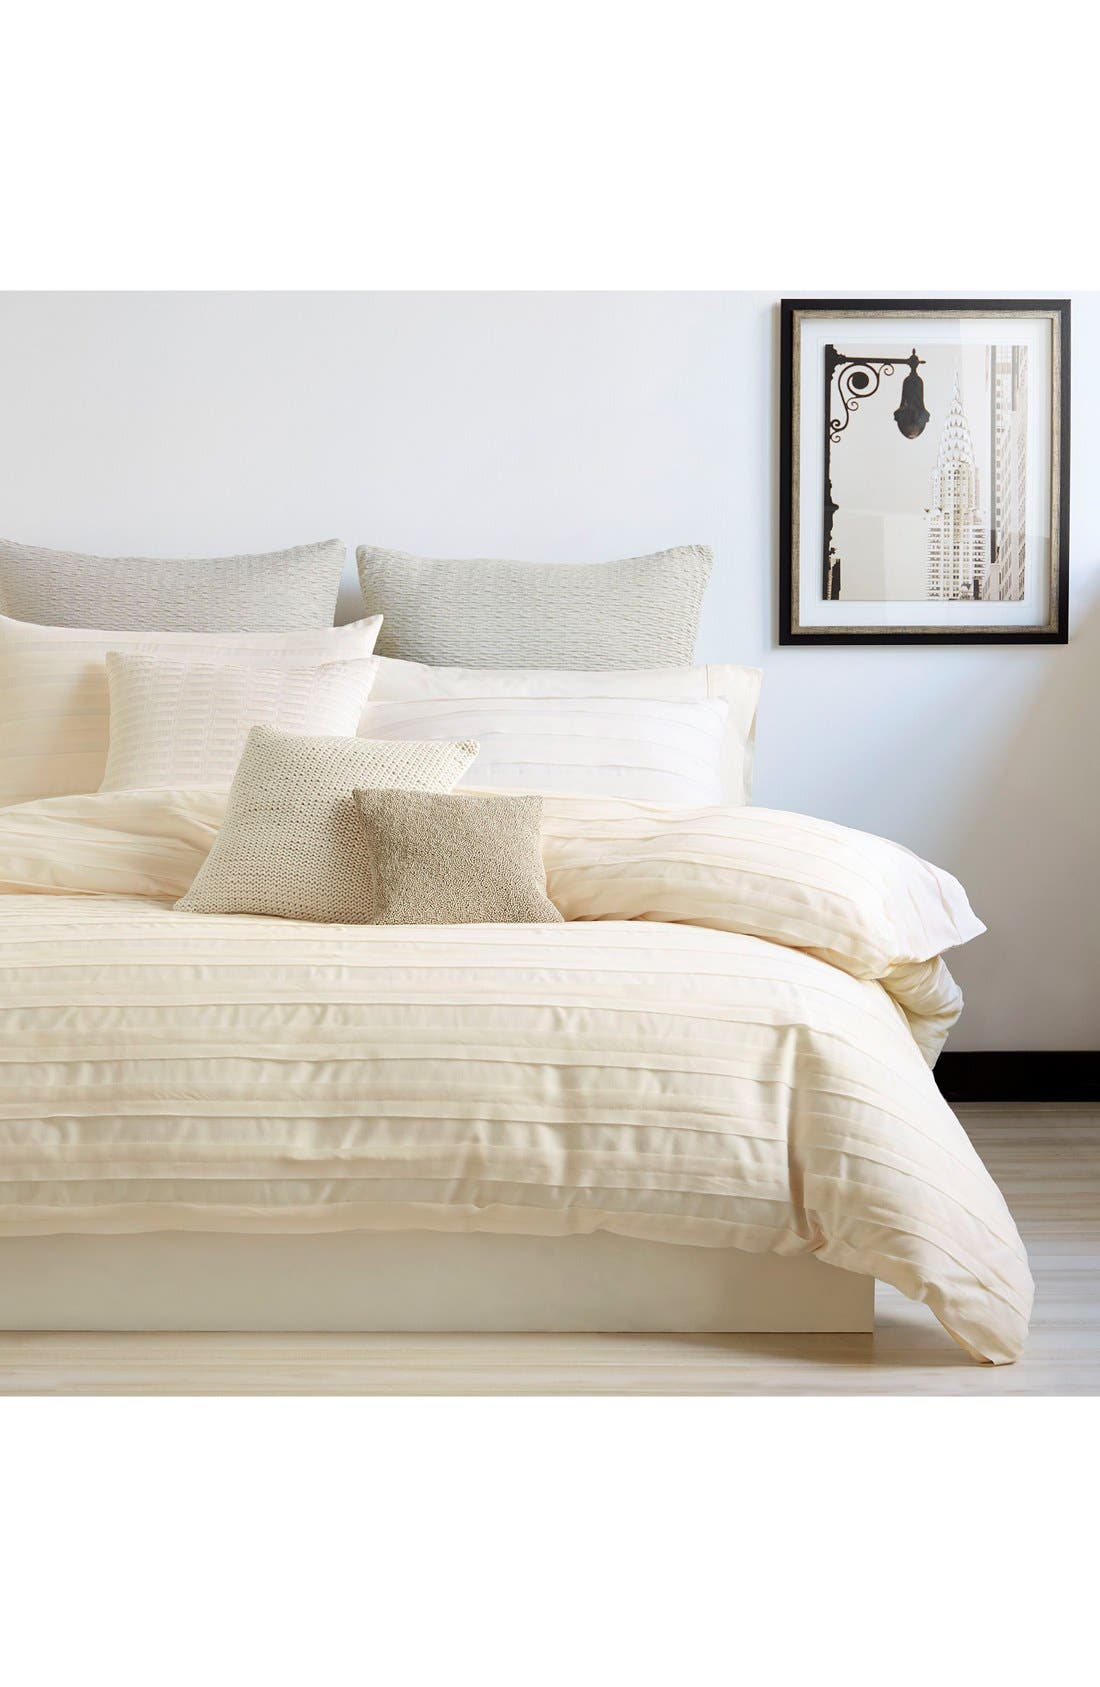 DKNY 'Loft Stripe' Bedding Collection